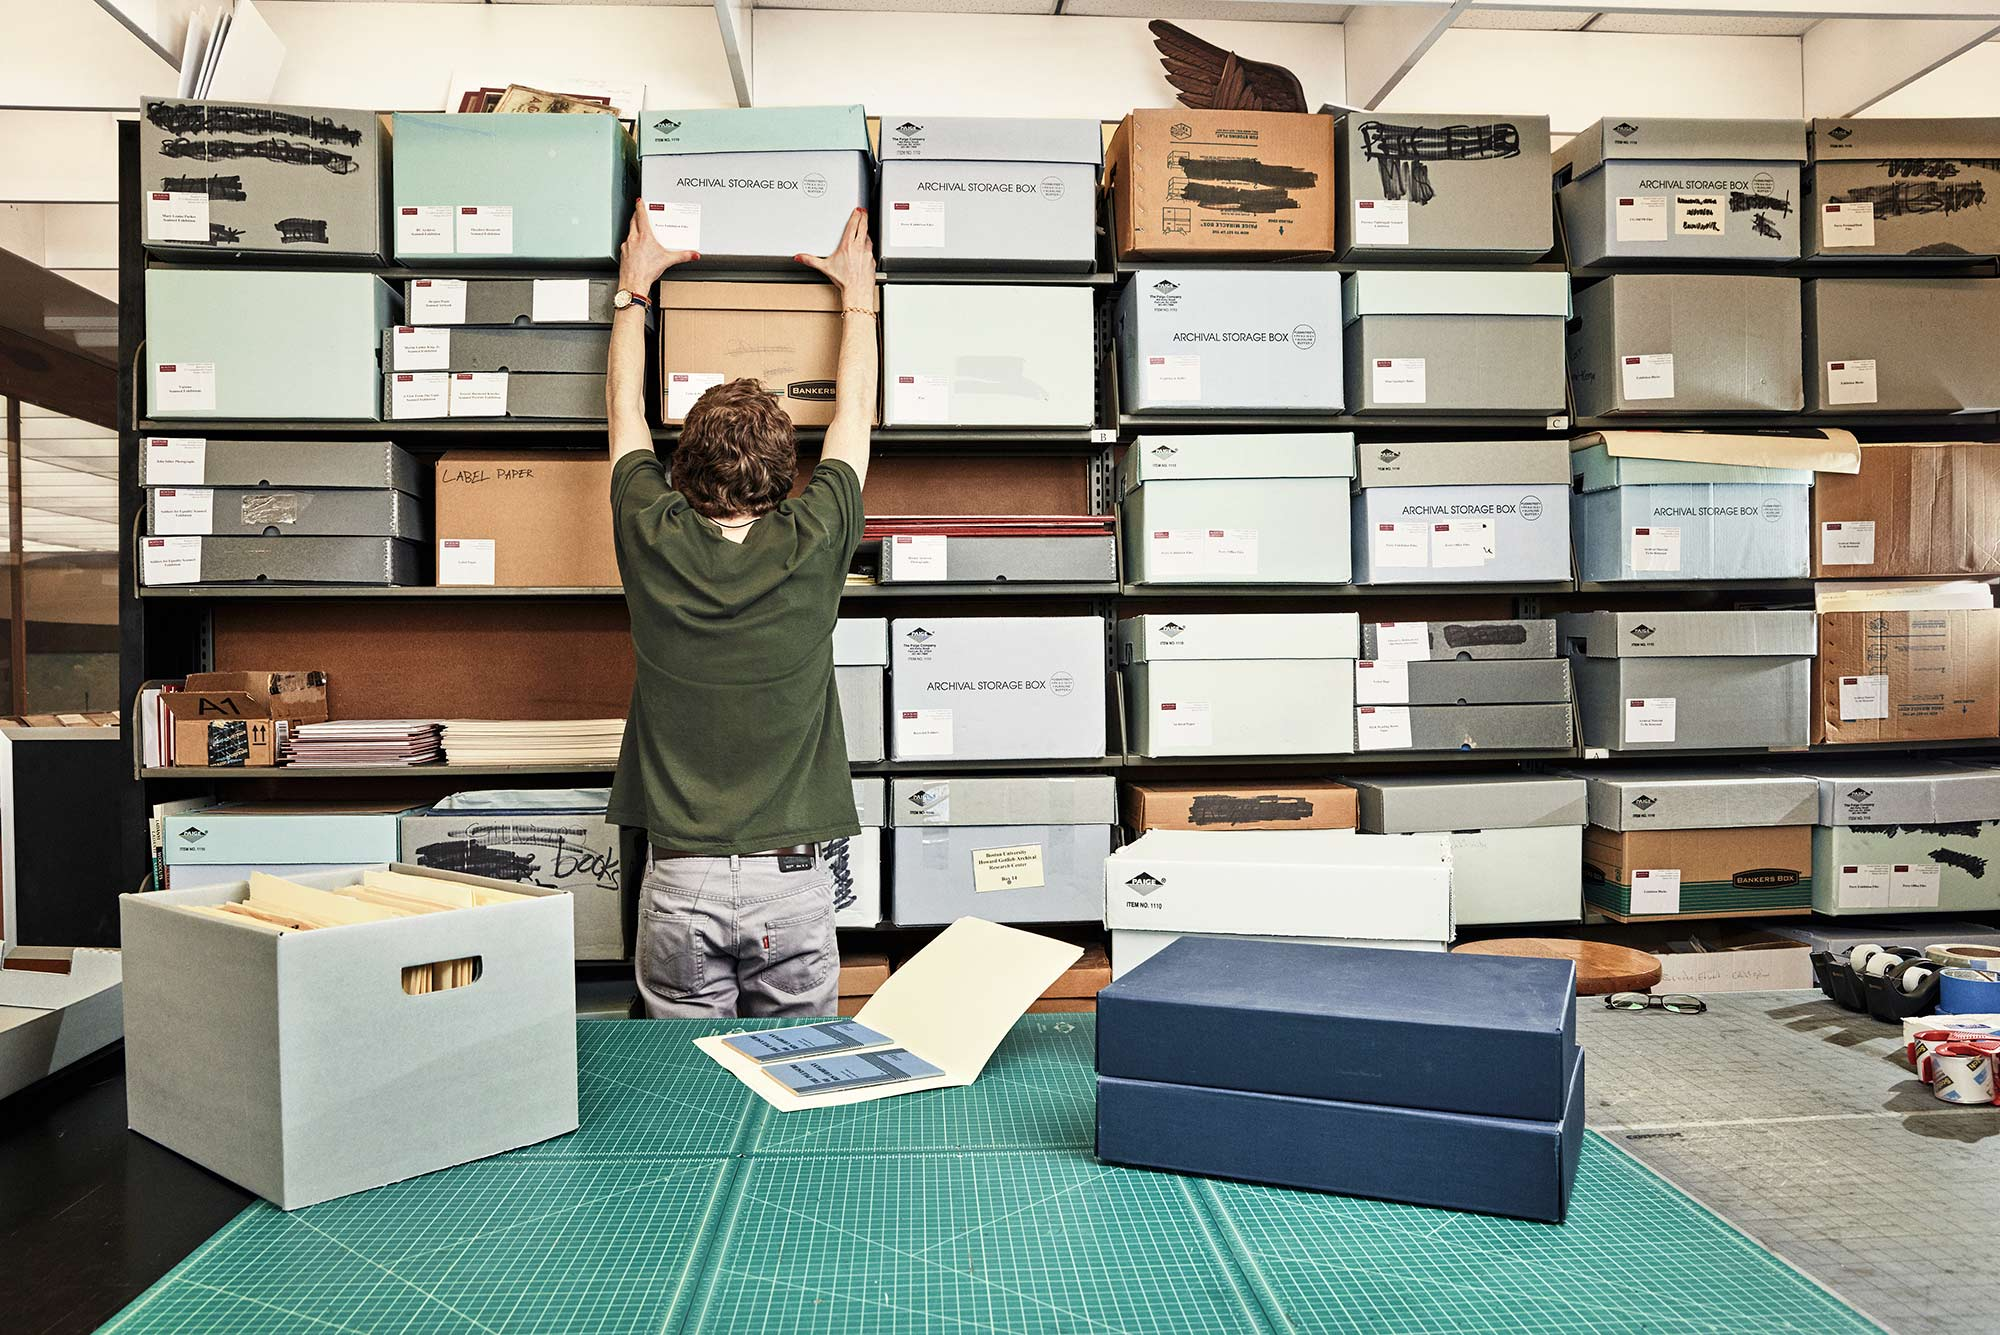 Photo of a student worker at the Howard Gotlieb Archival Research Center filing archive boxes.